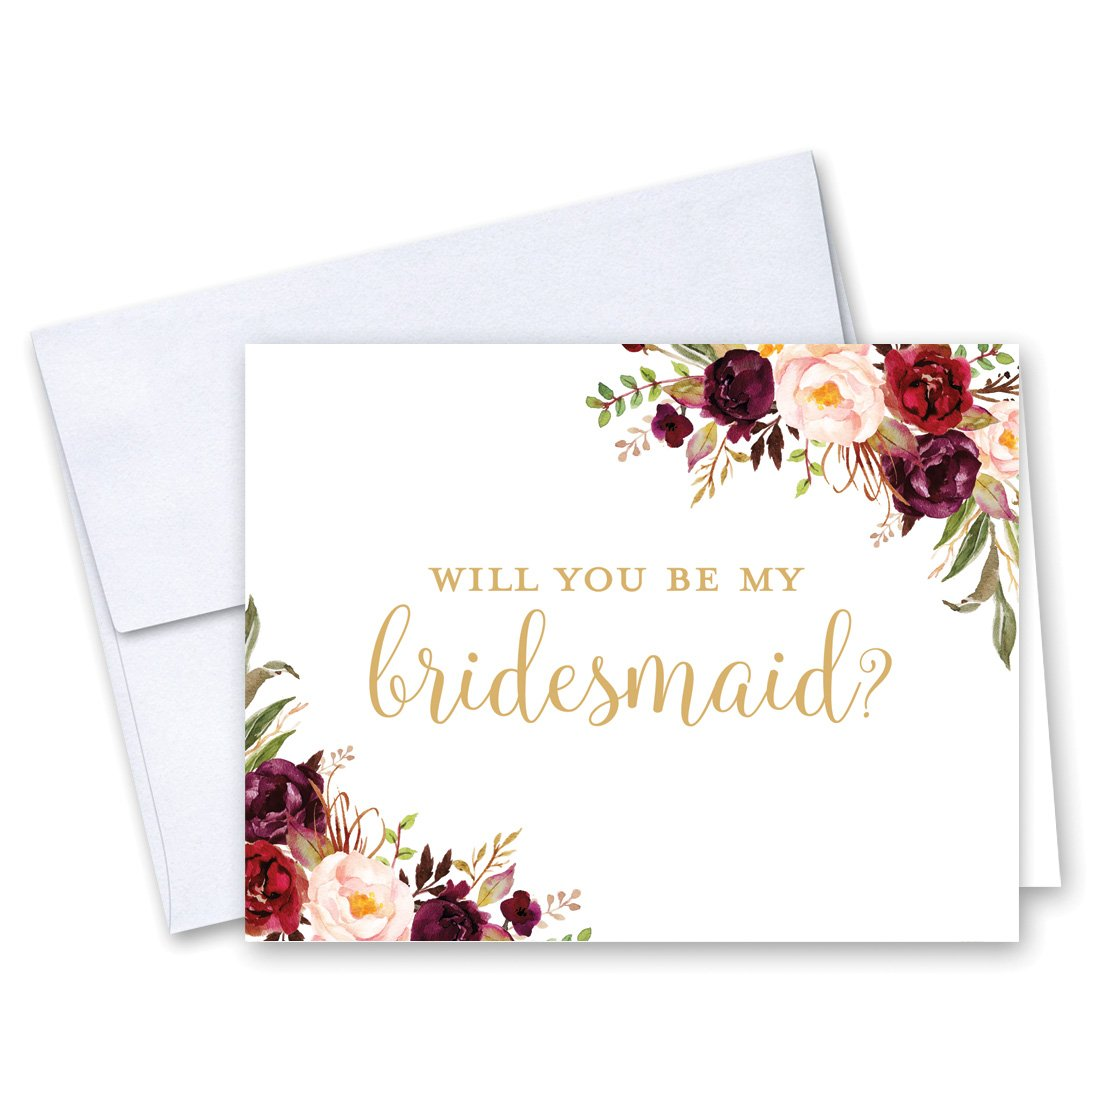 8 Will You Be My Bridesmaid Cards and 2 Maid of Honor Cards - Bold Floral Bridesmaid Proposal - Bridal Party Card - Bridesmaid Card